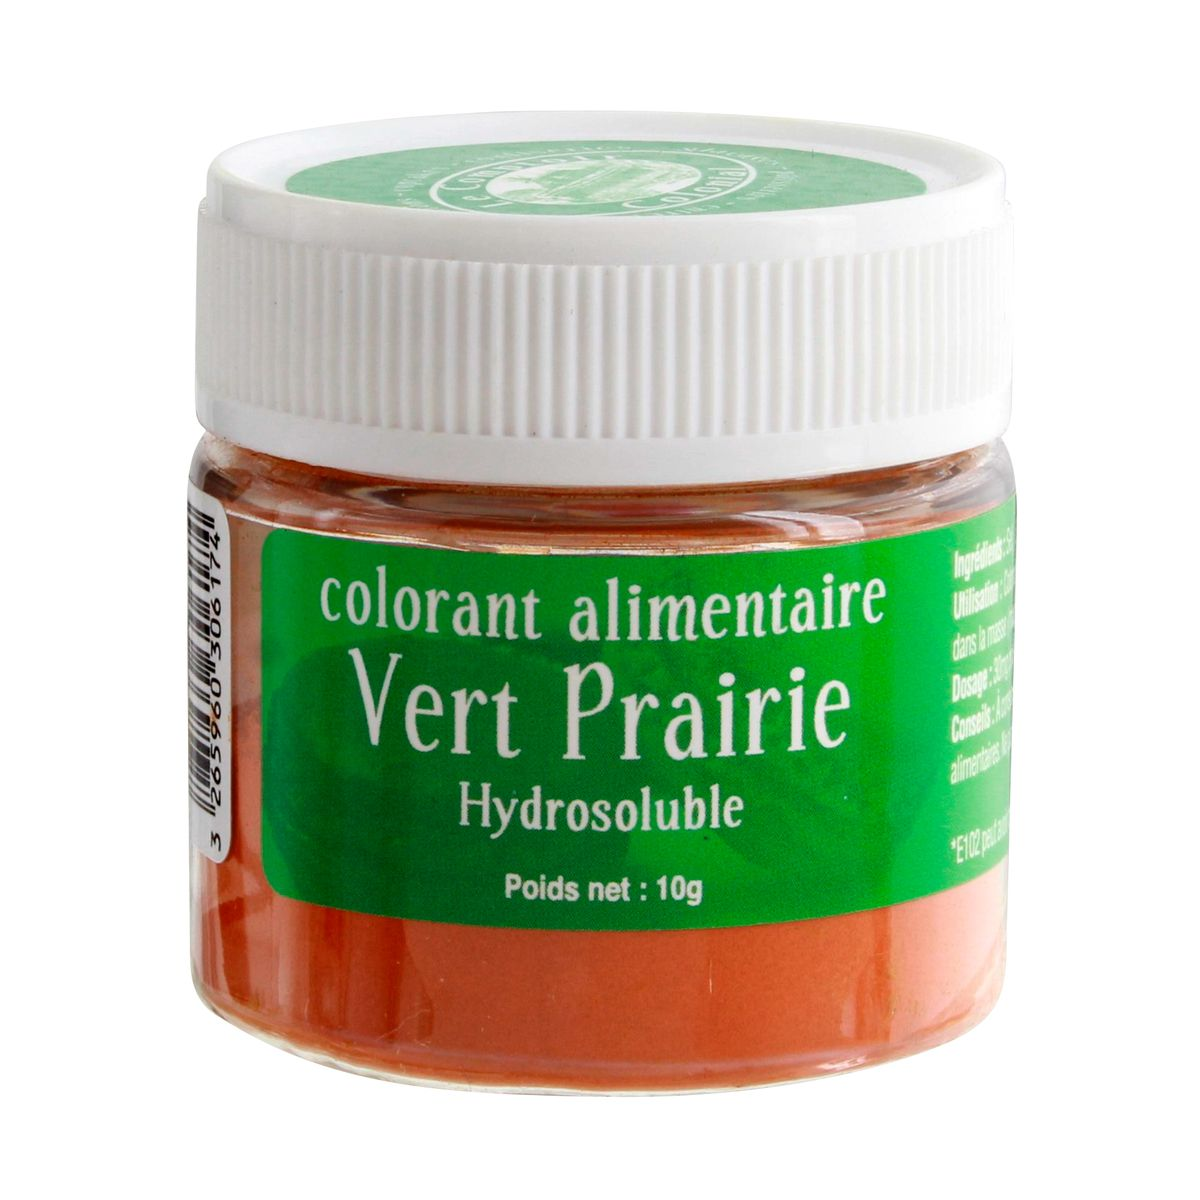 Colorant alimentaire hydrosoluble vert prairie 10 gr - Le Comptoir Colonial